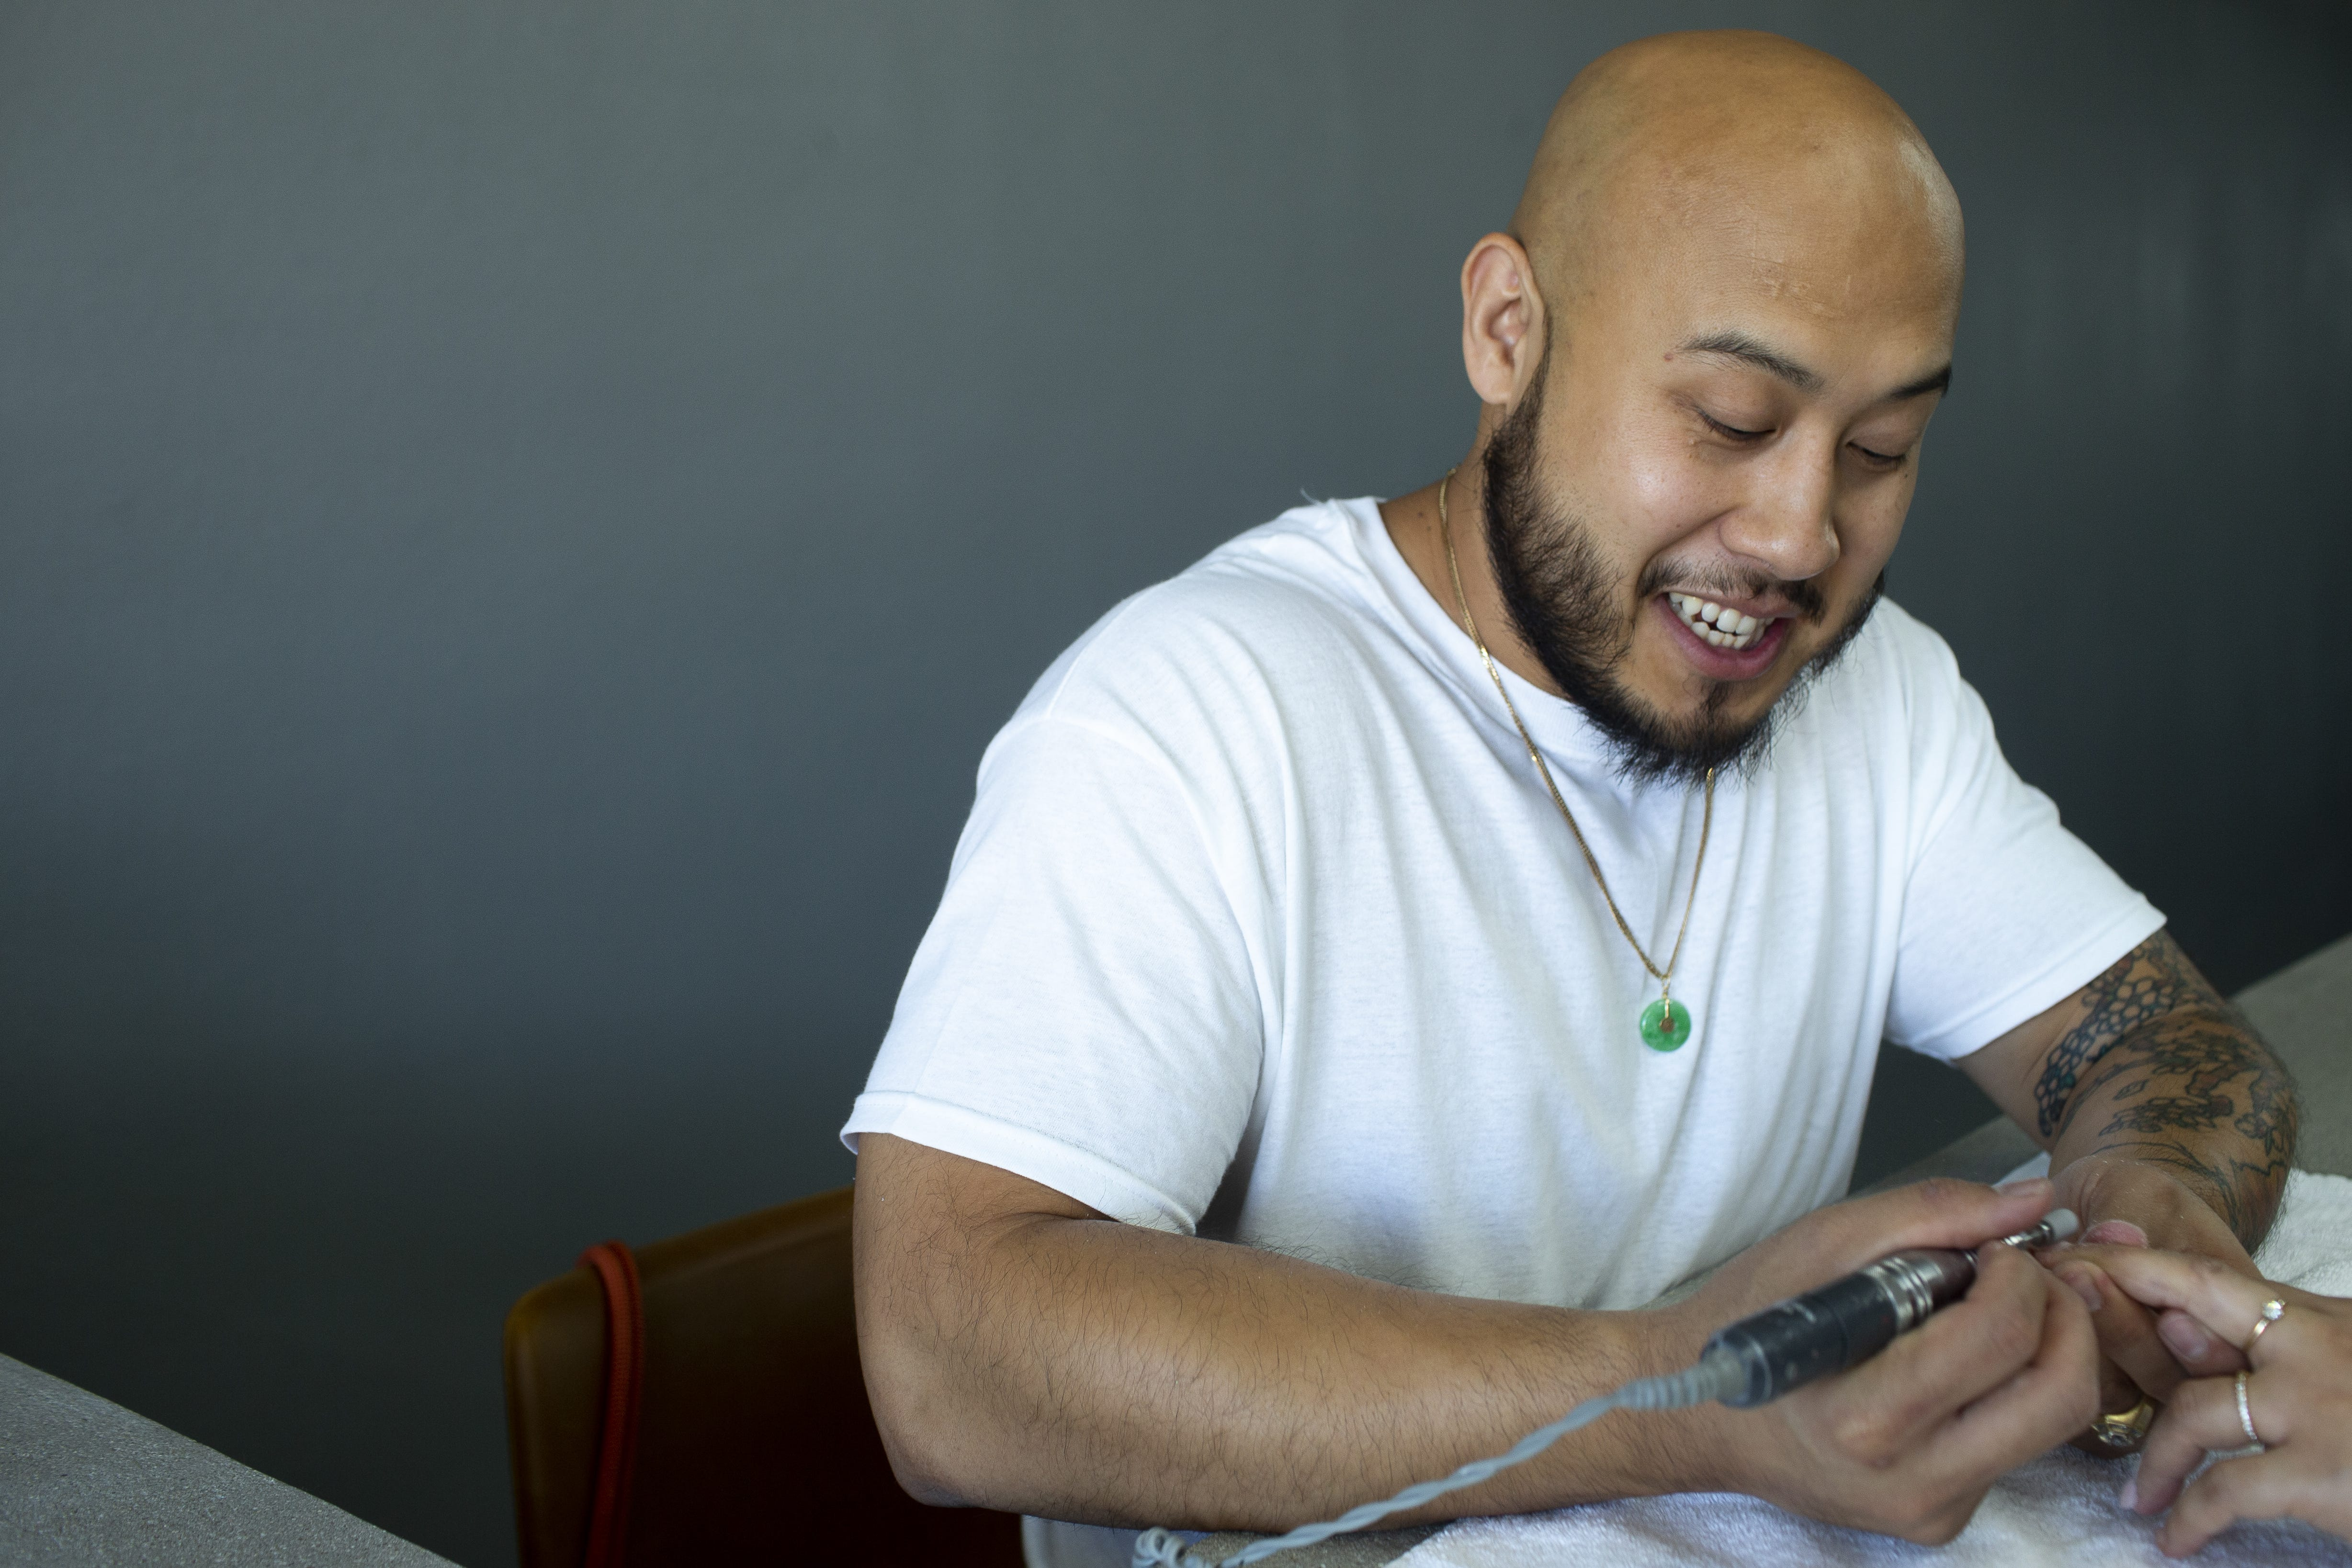 'I had $20 to my name': How a Phoenix nail artist found Instagram fame and his own lane